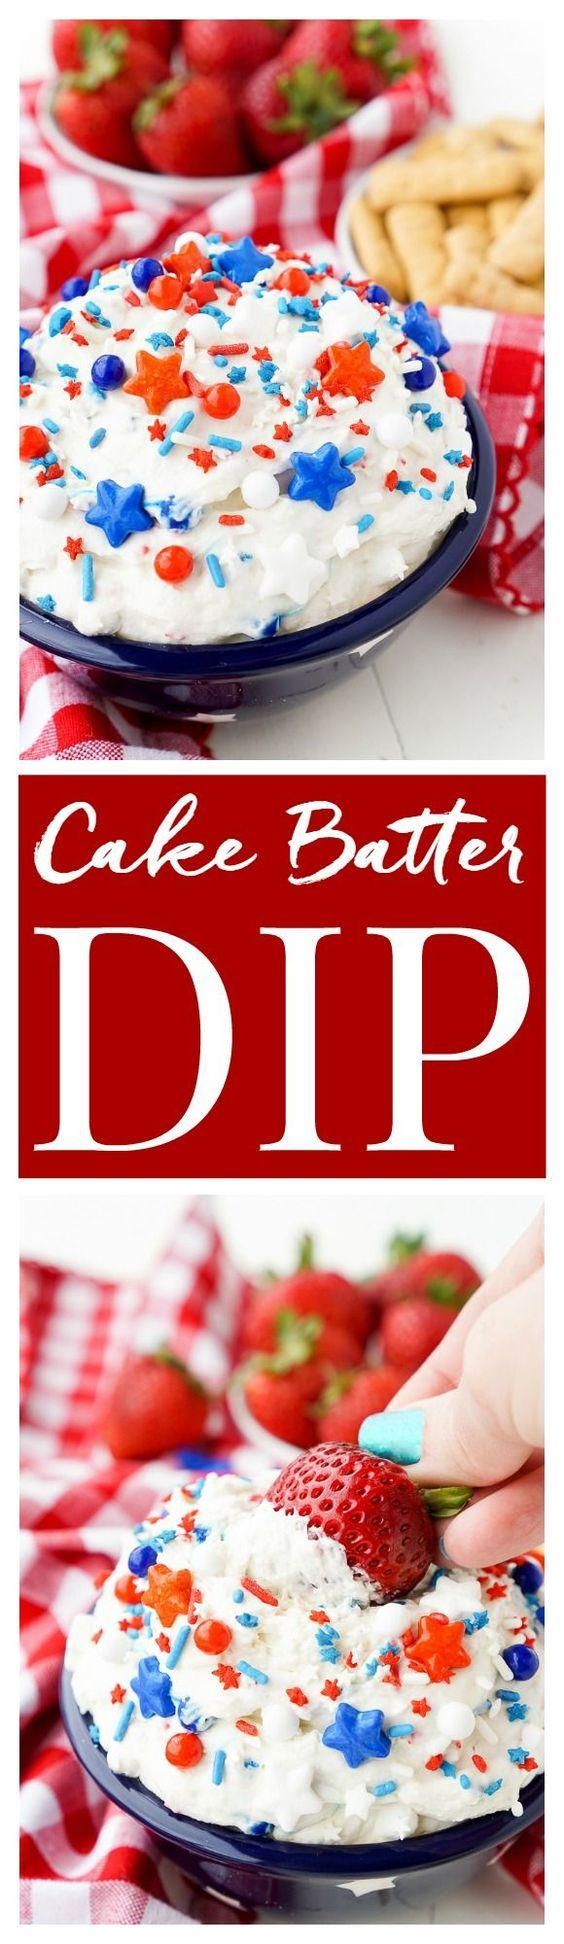 Cake Batter Dip - made with just 4 ingredients and is ready in just 5 minutes! Change the sprinkles colors to customize it for any occasion like birthdays, graduations, the 4th of July!